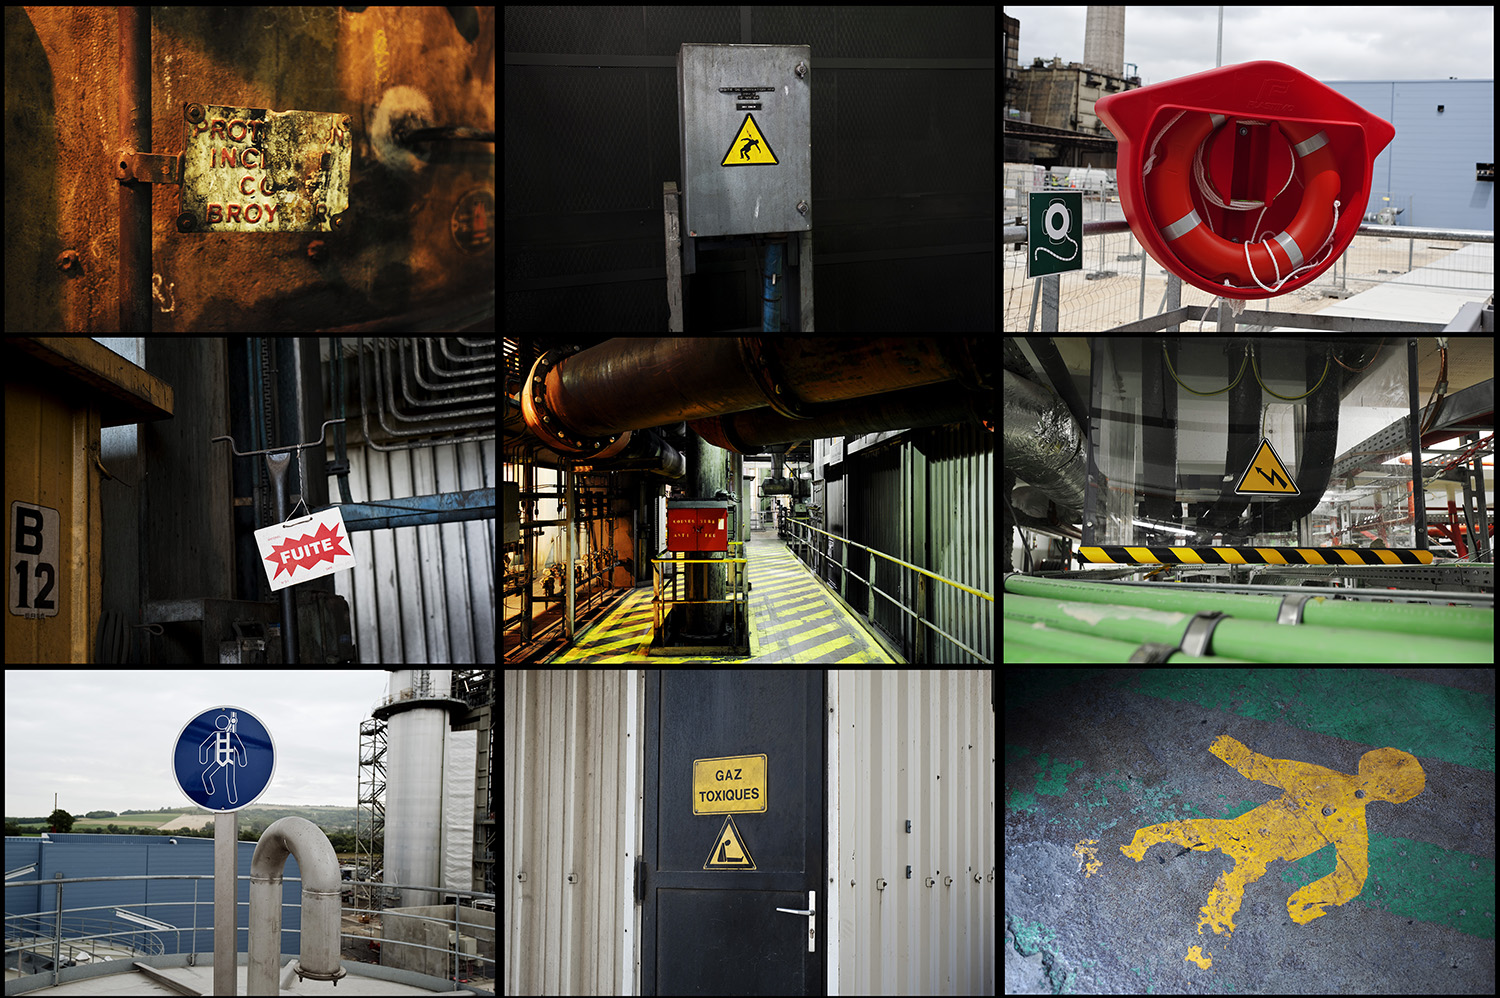 Warnings at La Maxe, Richemont, and Blénod (coal and combined cycle plants).